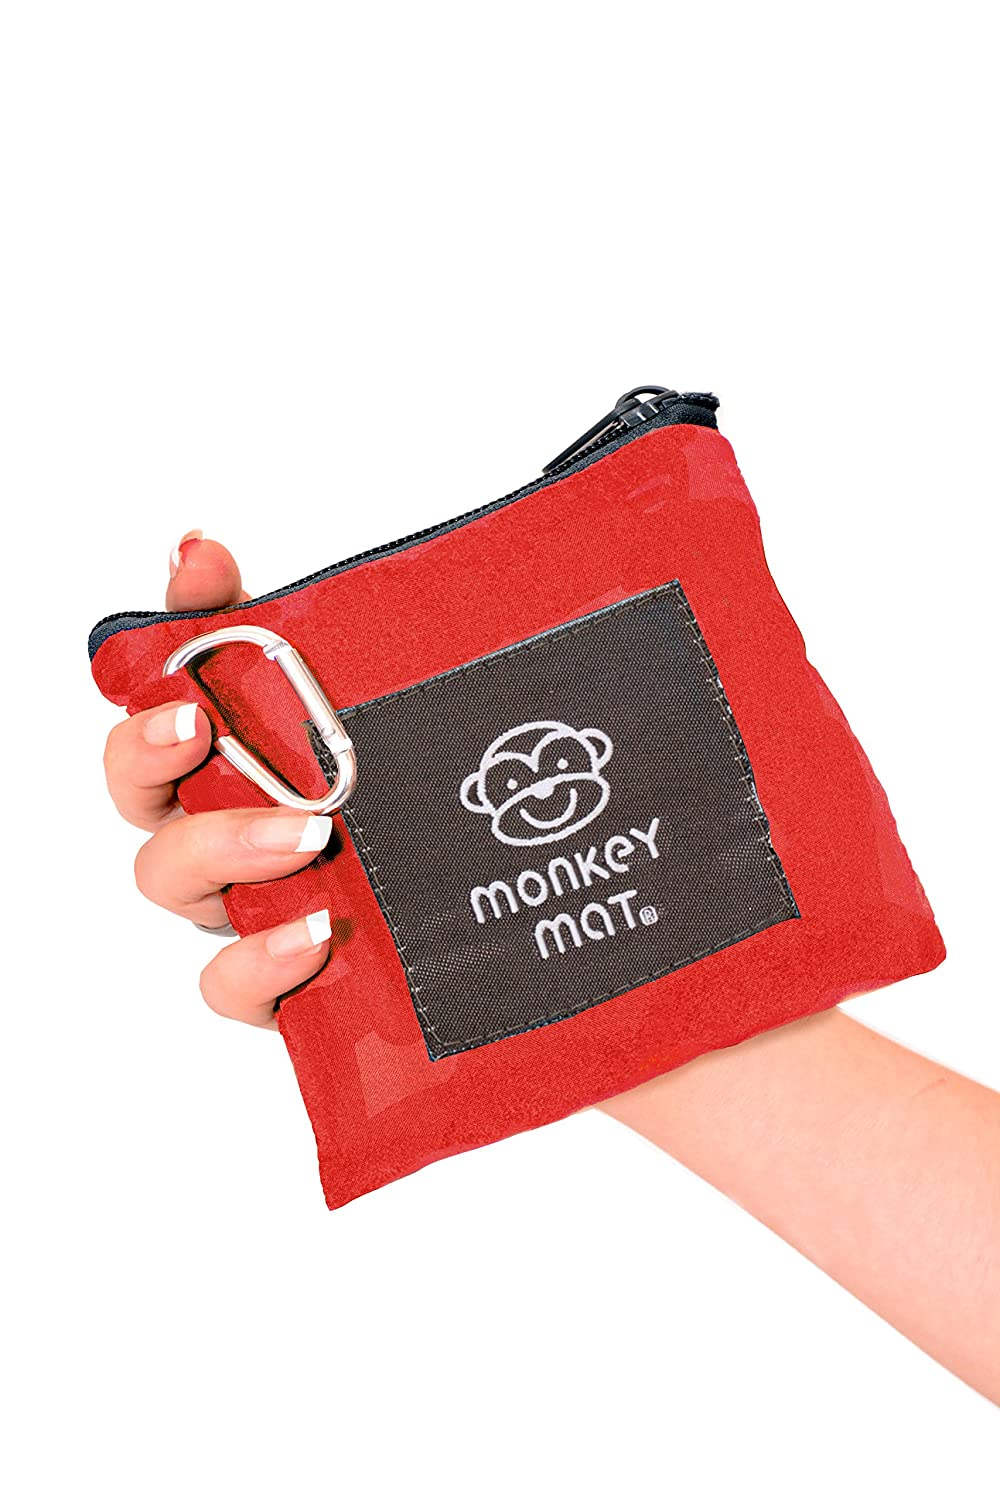 MONKEY MAT Portable Lightweight Indoor/Outdoor 5x5' Water/Sand Repellent Blanket with Corner Weights & Loops in Compact Pouch (Red Coral Crush) MM05